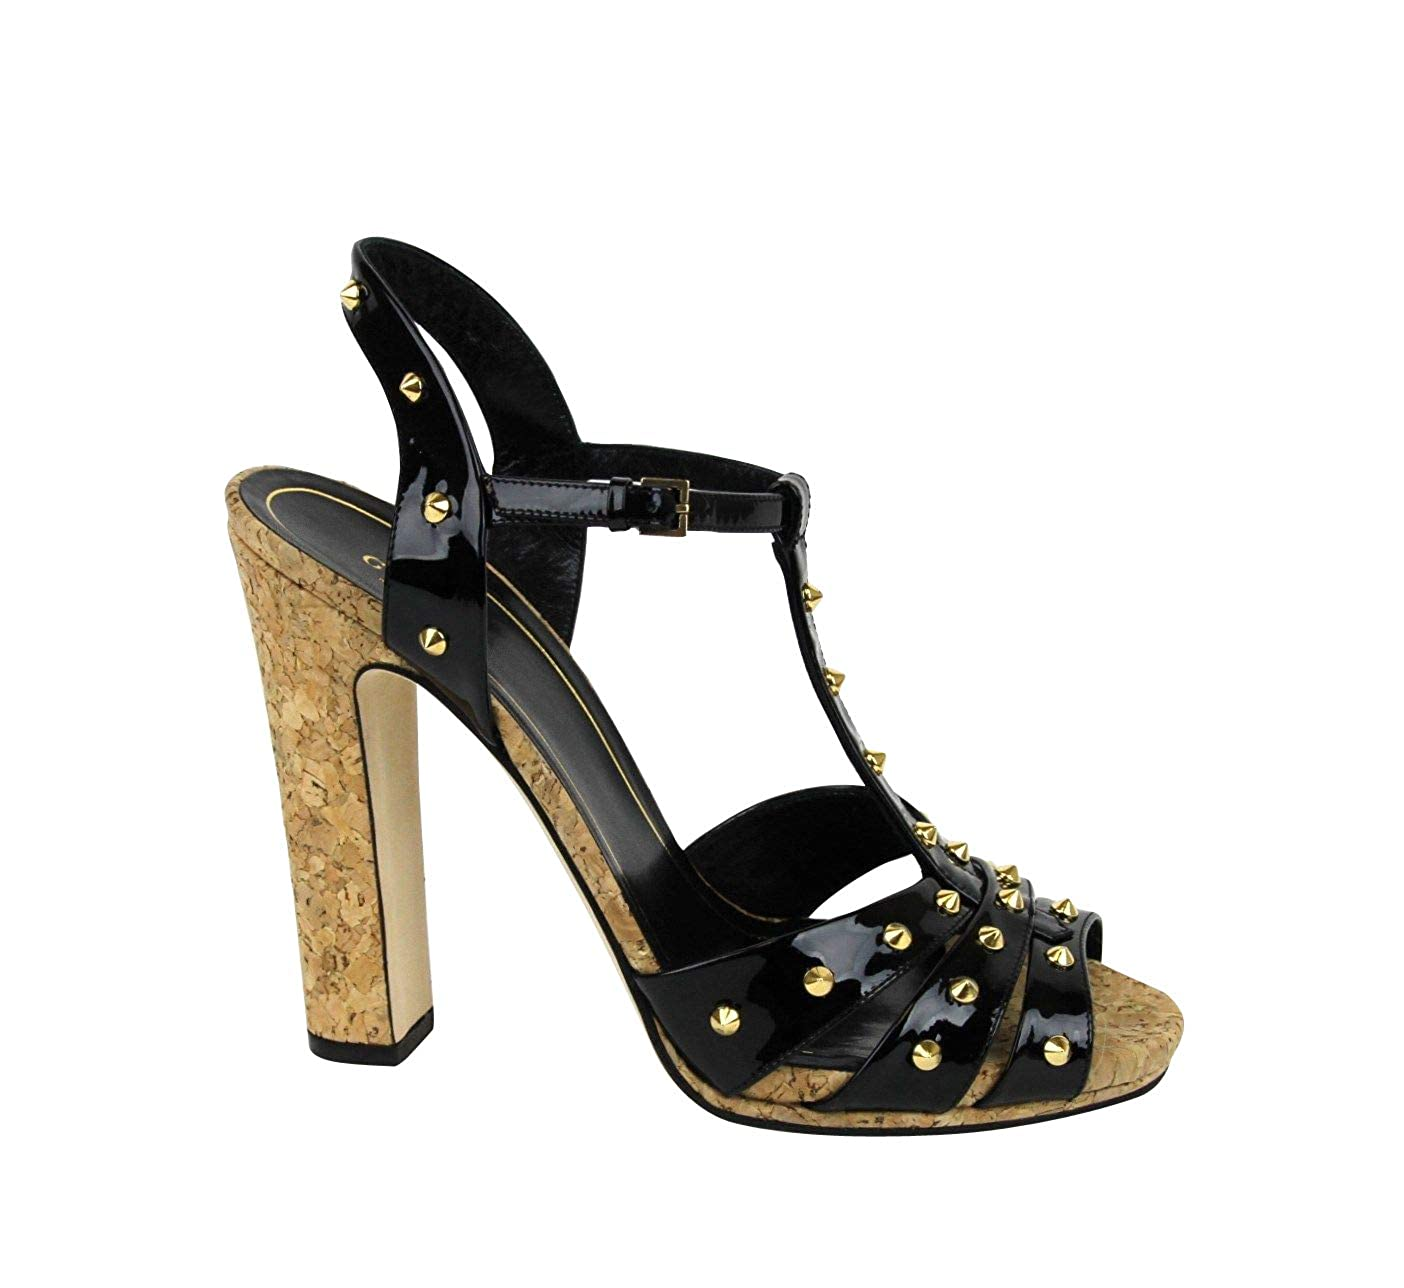 bf9bdfc9aa21 Amazon.com  Gucci Women s Black Jacquelyne Studs Patent Leather Platform  Sandal 310349 1000 (G 38.5   US 8.5)  Shoes